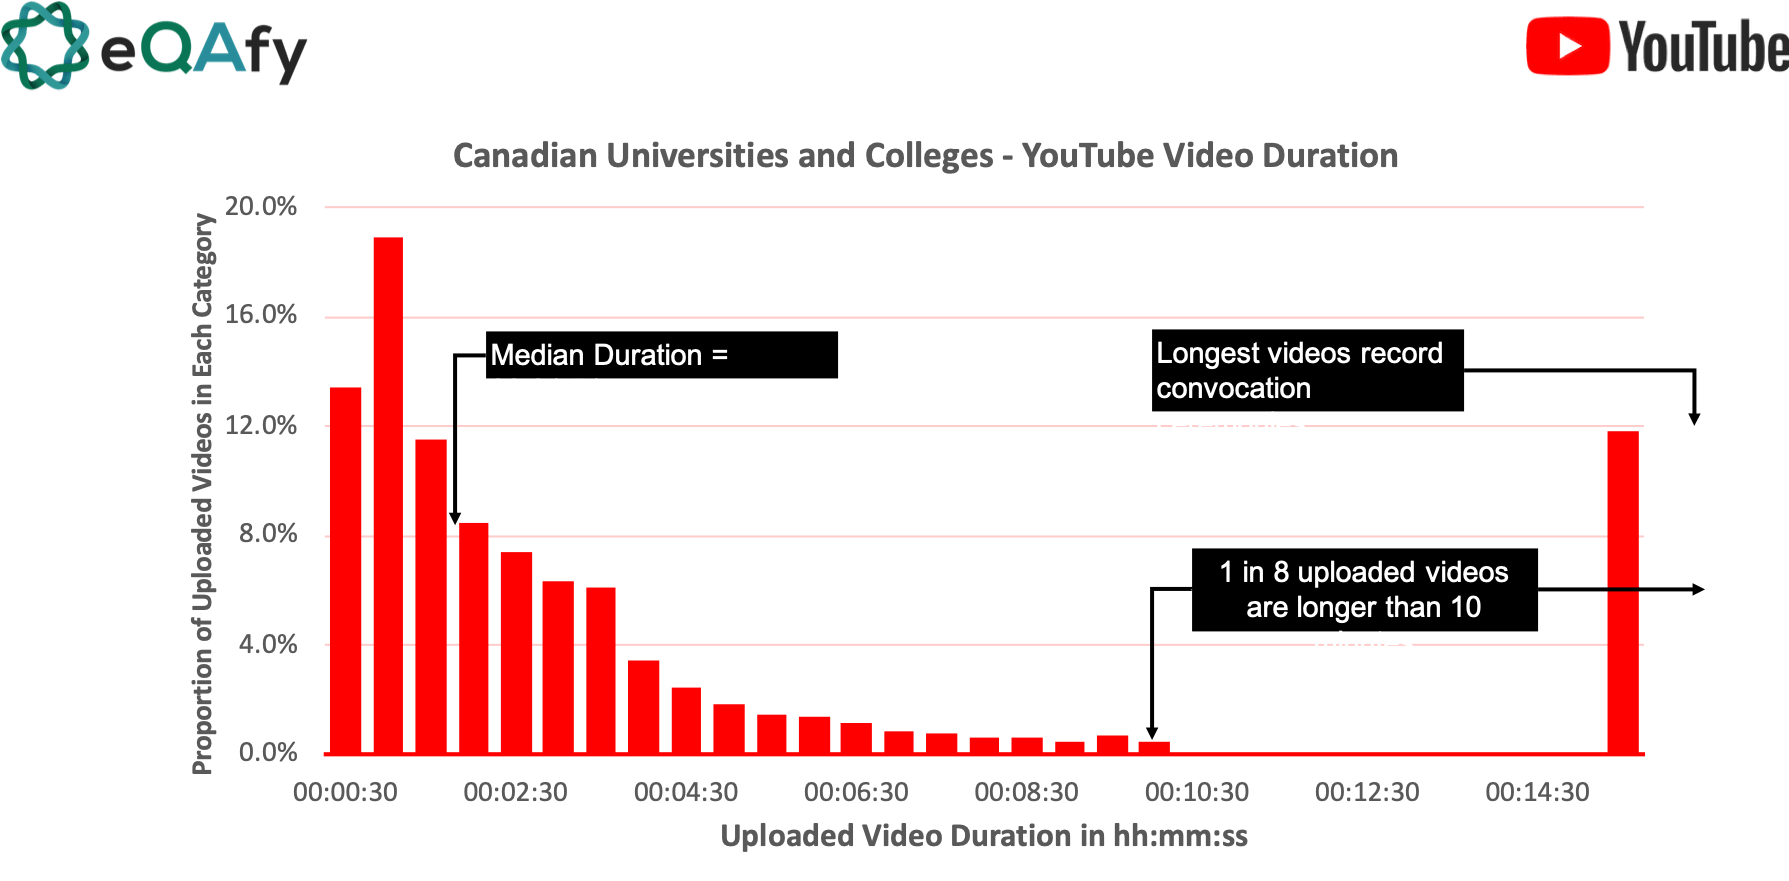 Distribution of YouTube video duration for higher education/post-secondary institutions in Canada